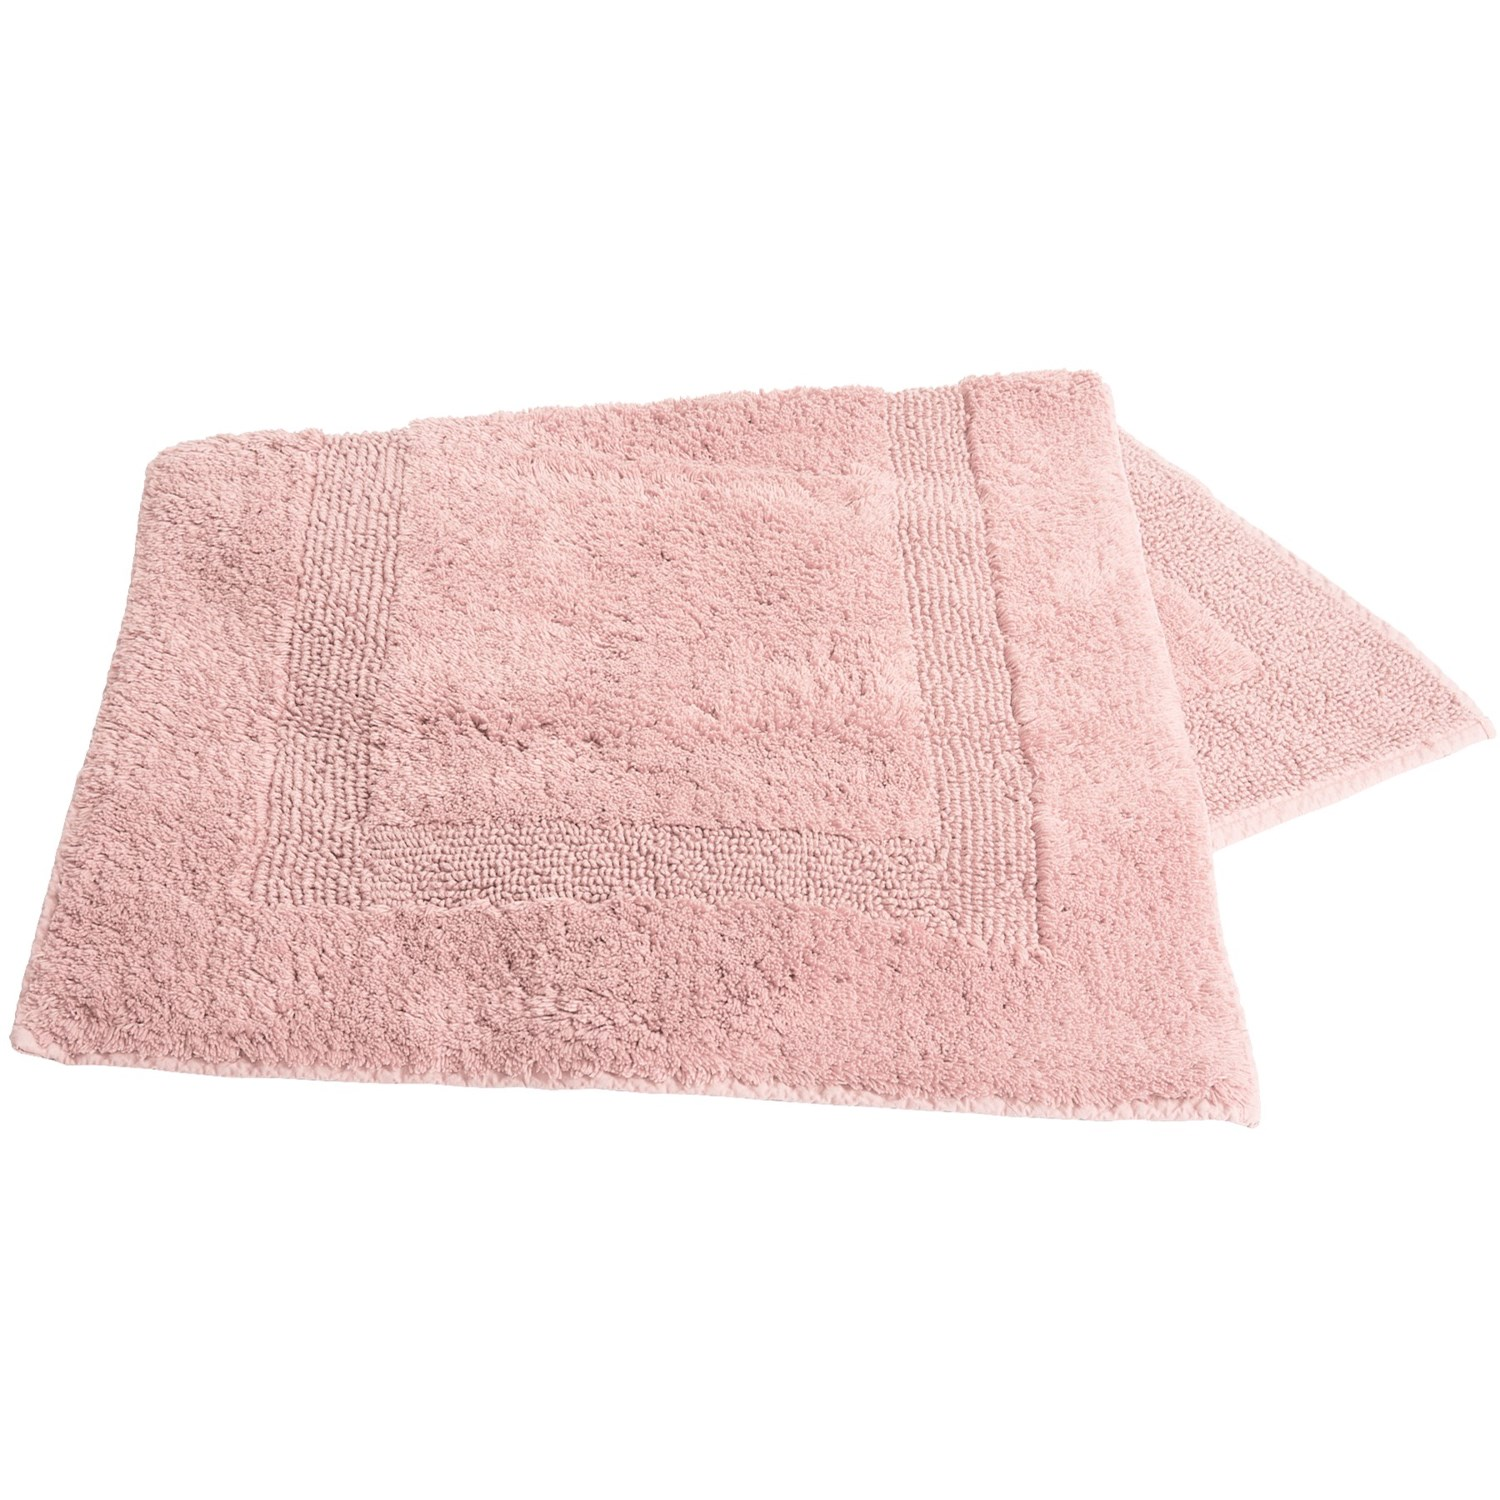 bath rugs large size with luxury picture